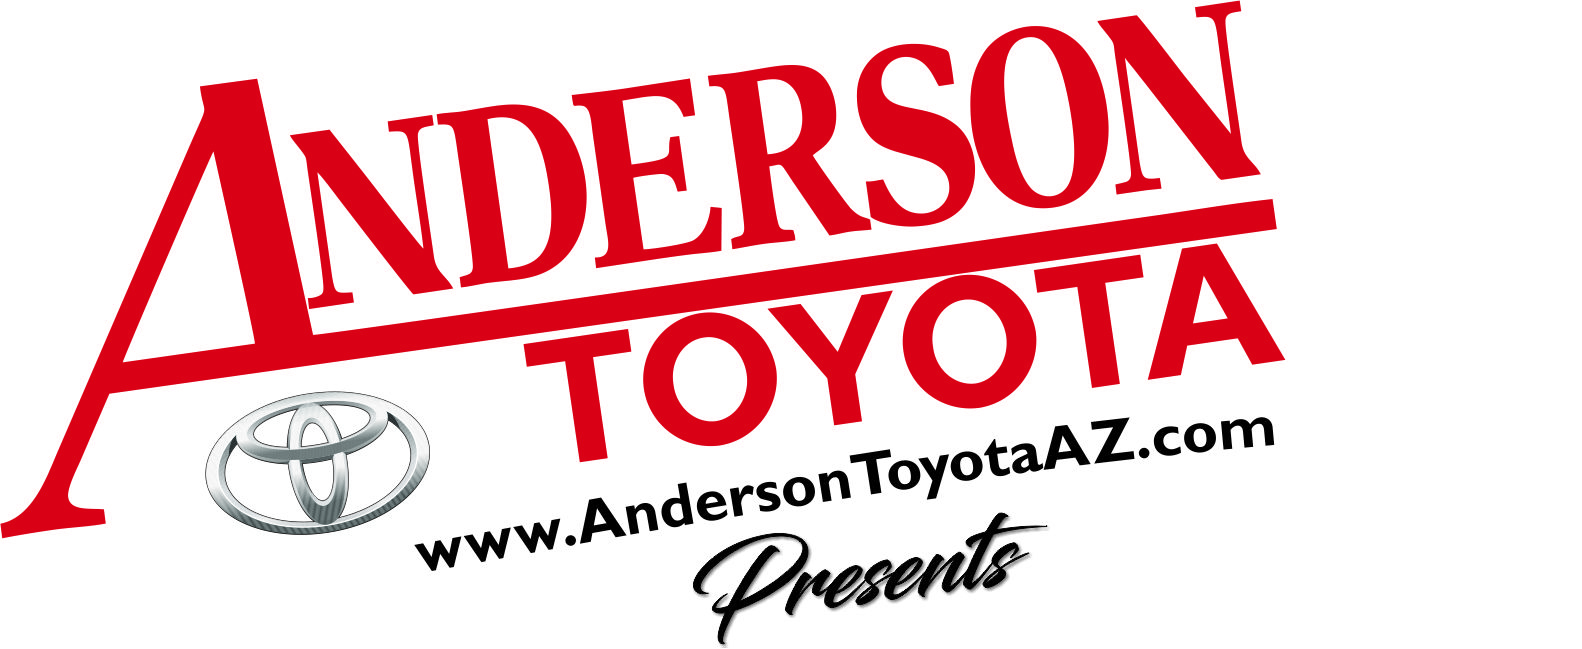 2019 Event Sponsor - Huzzah to Anderson Toyota for making our event possible!